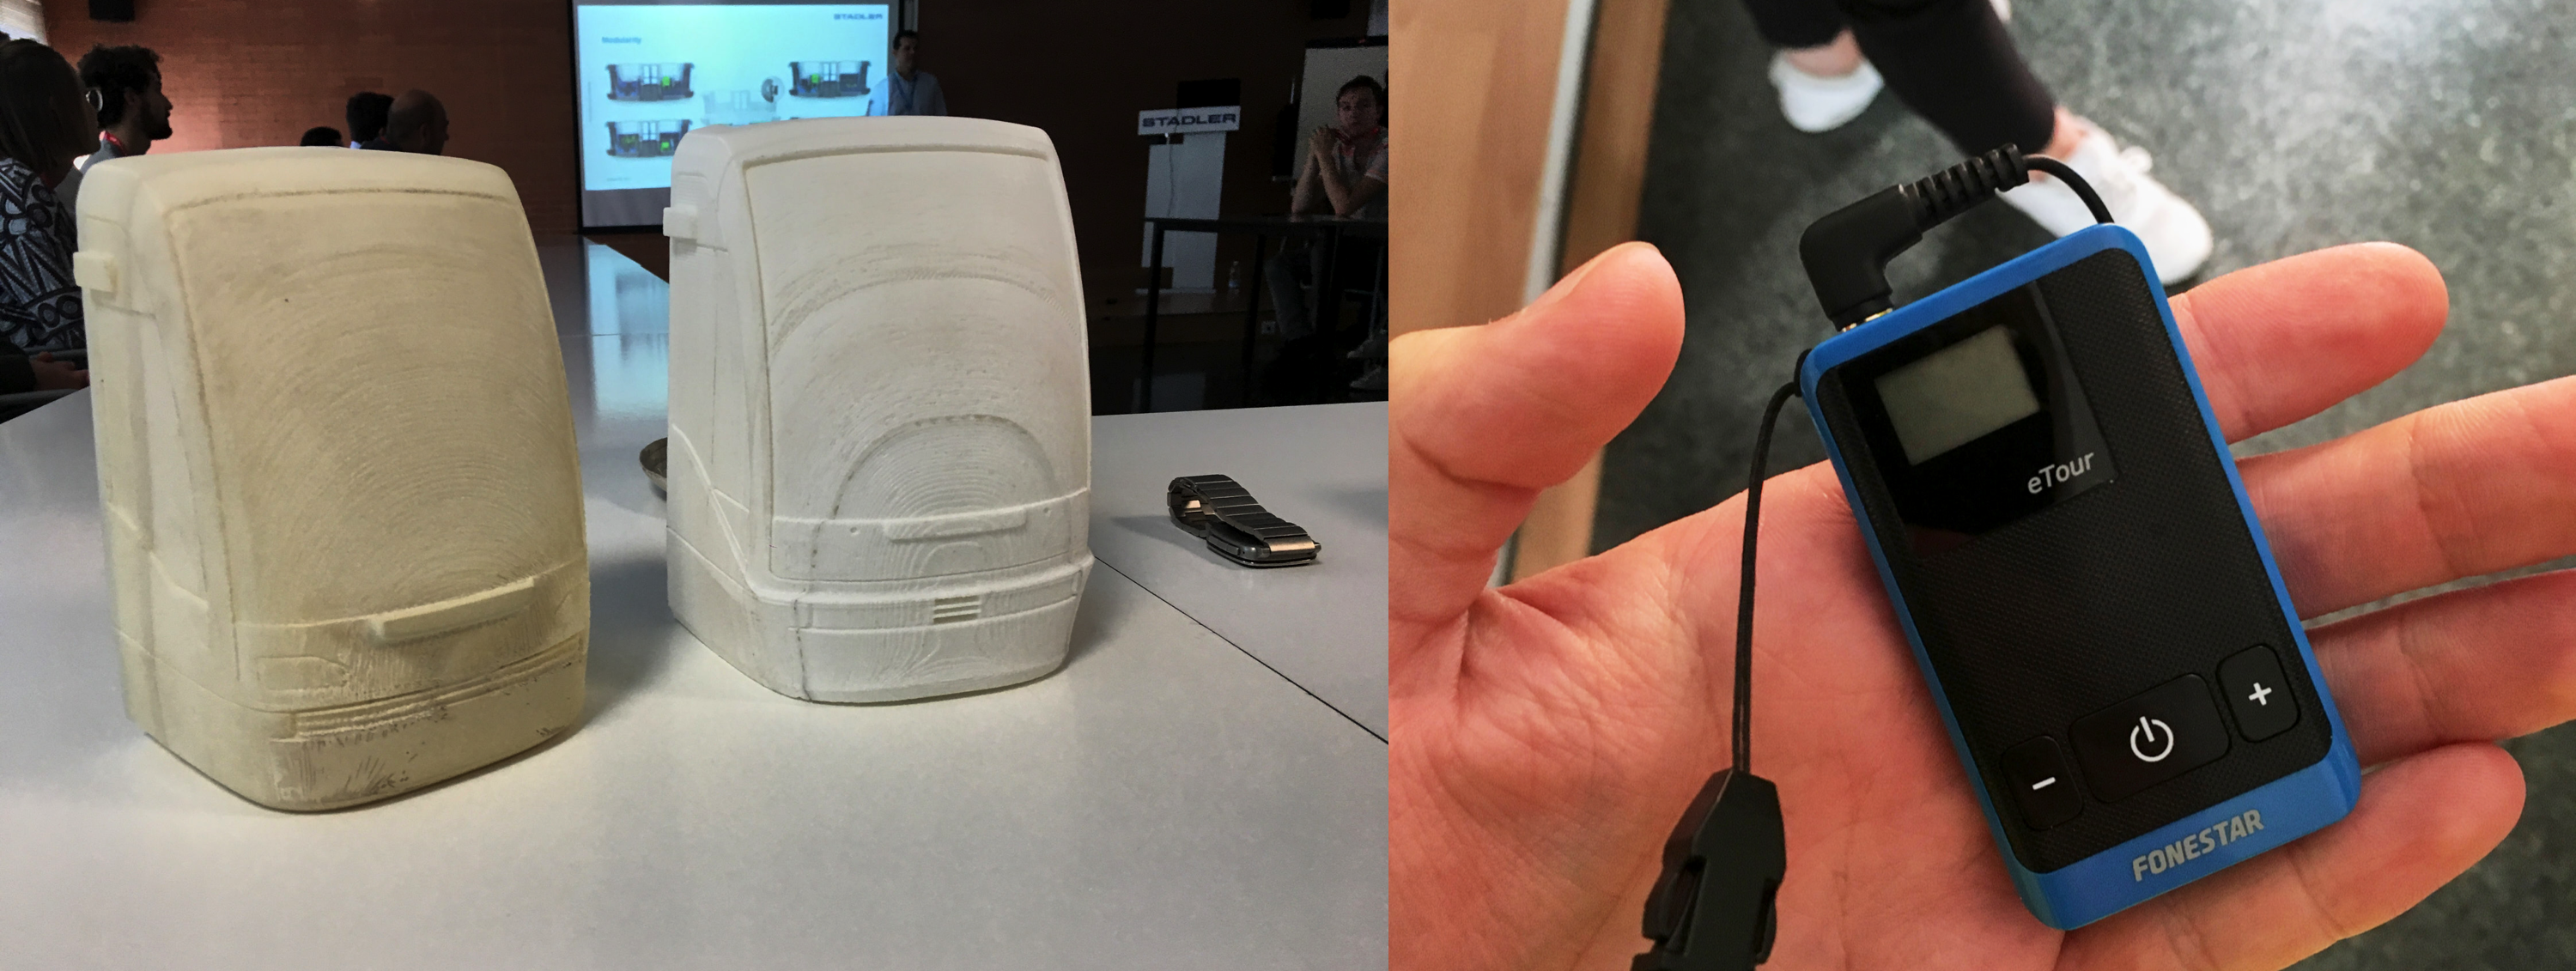 3D printed train models and the tour guide reciever